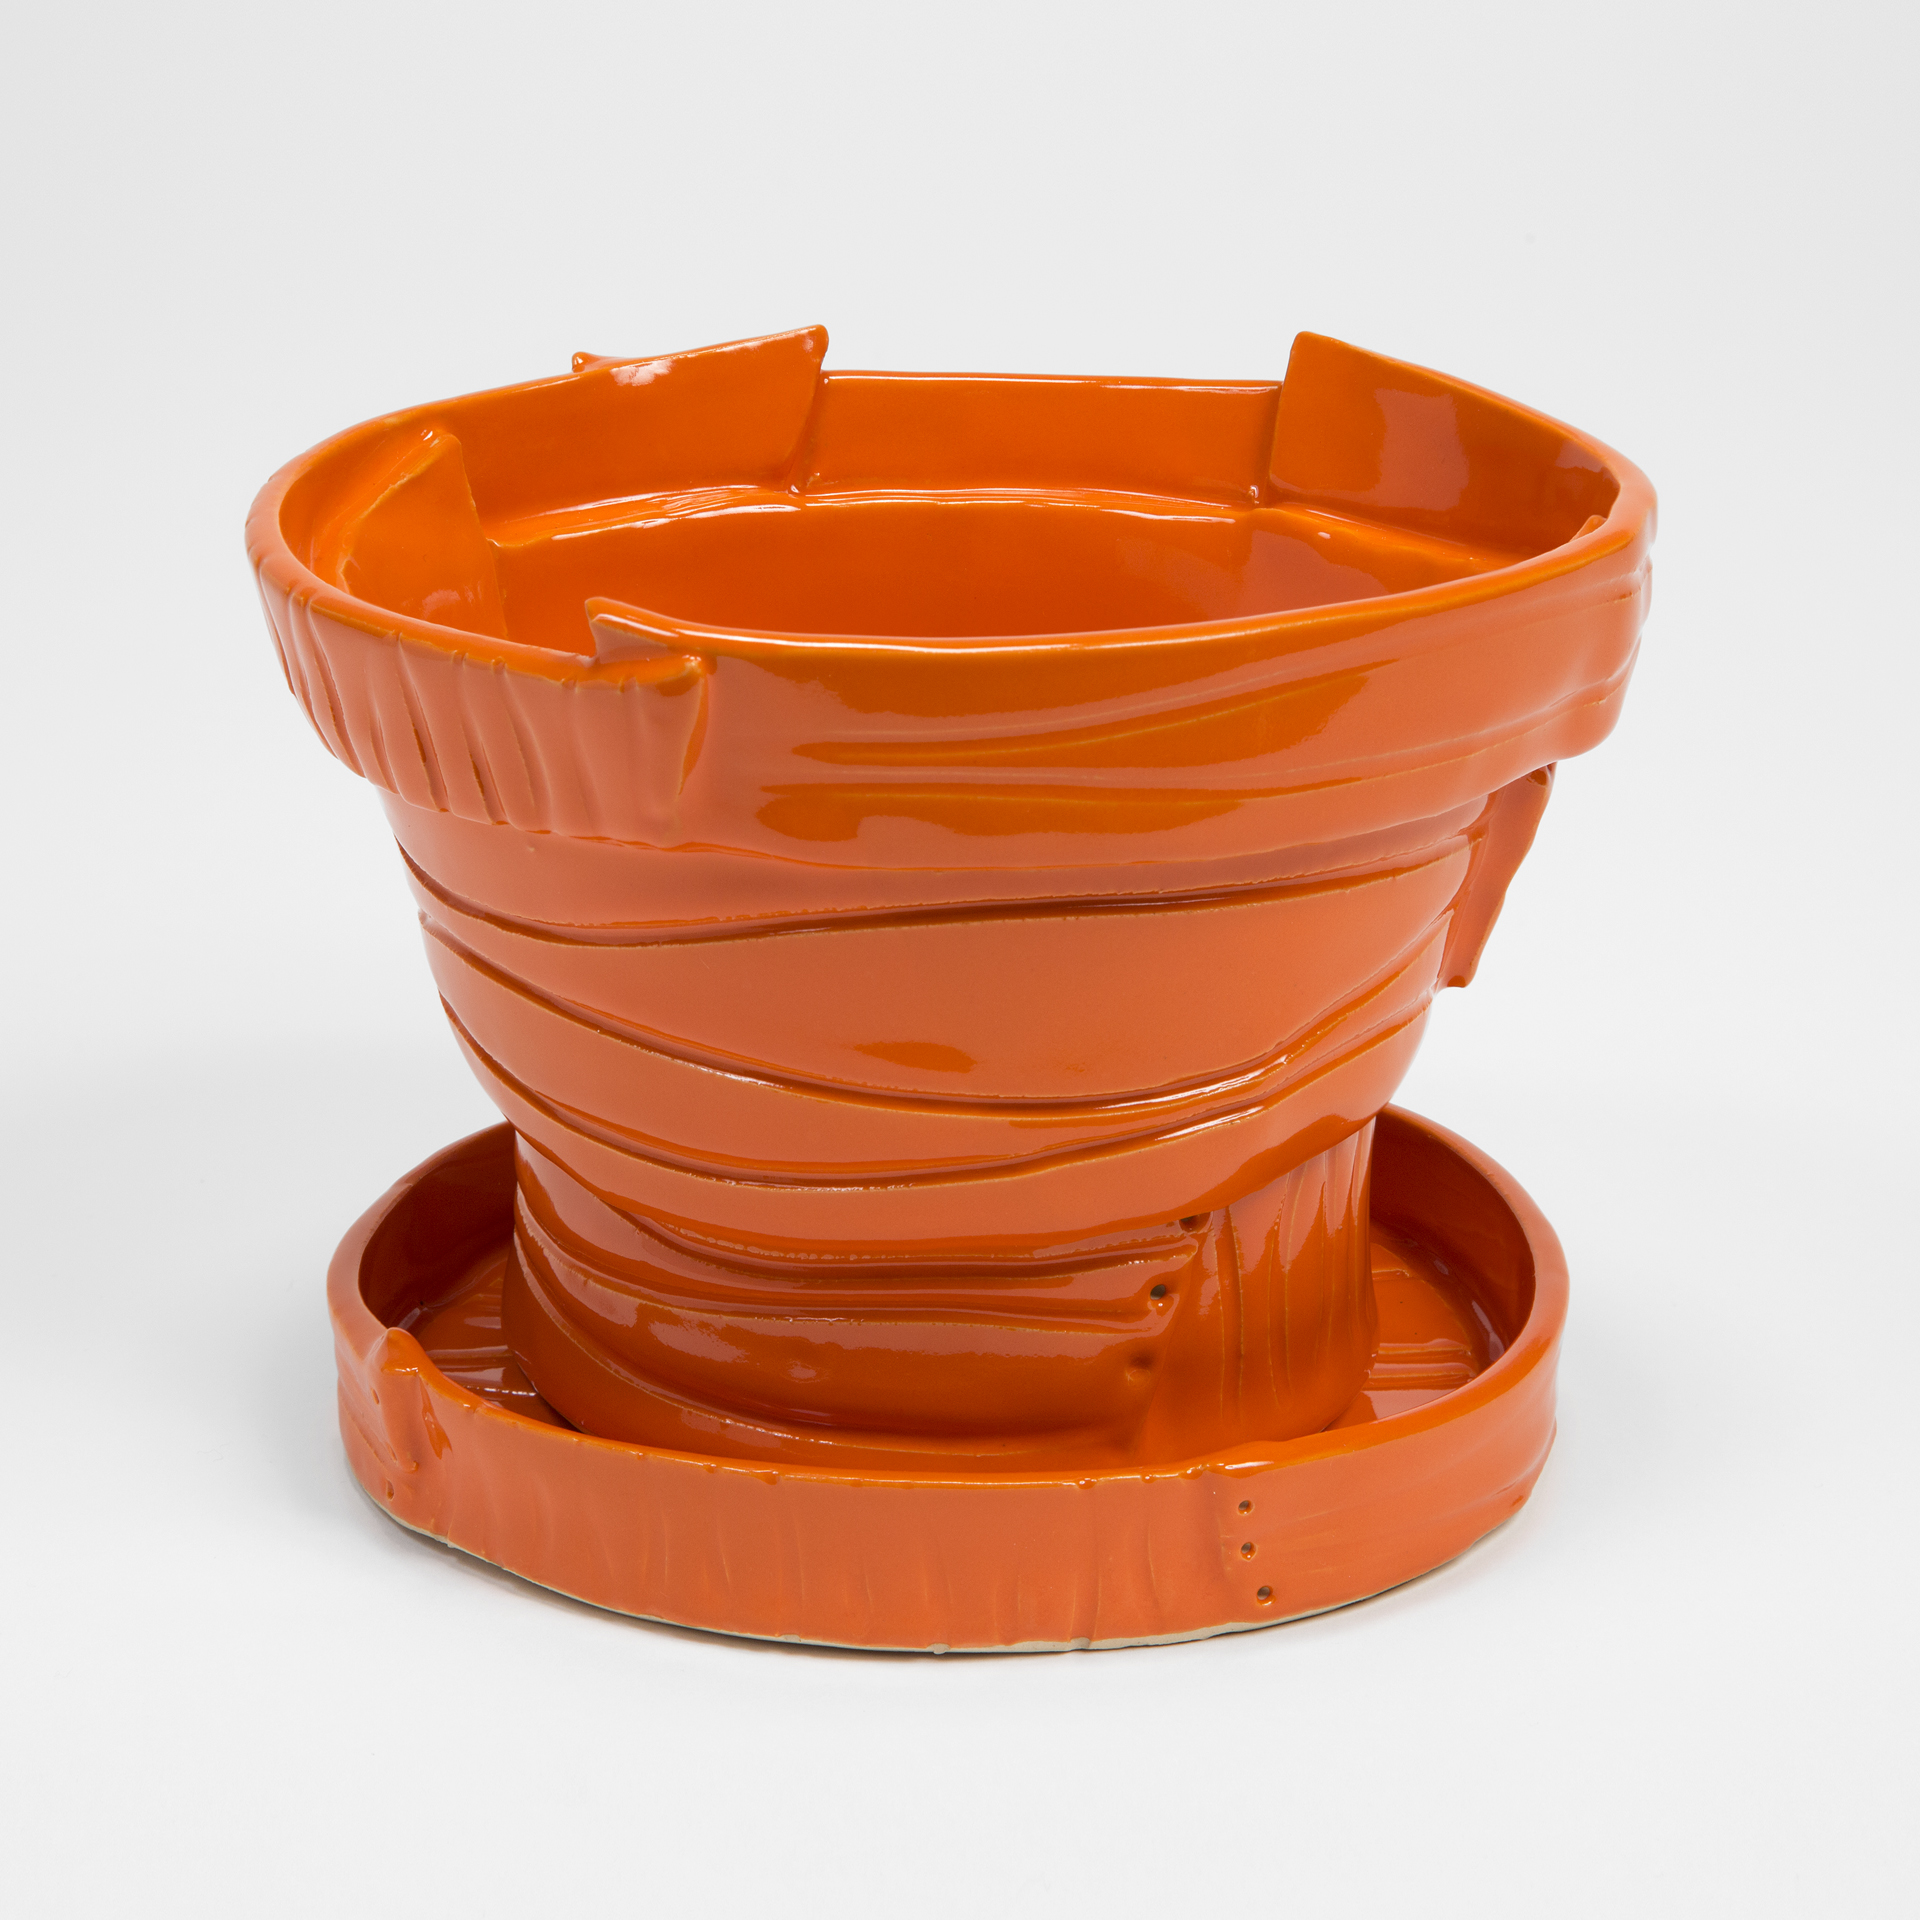 Orange Pot with Drainage Holes and Detached Tray